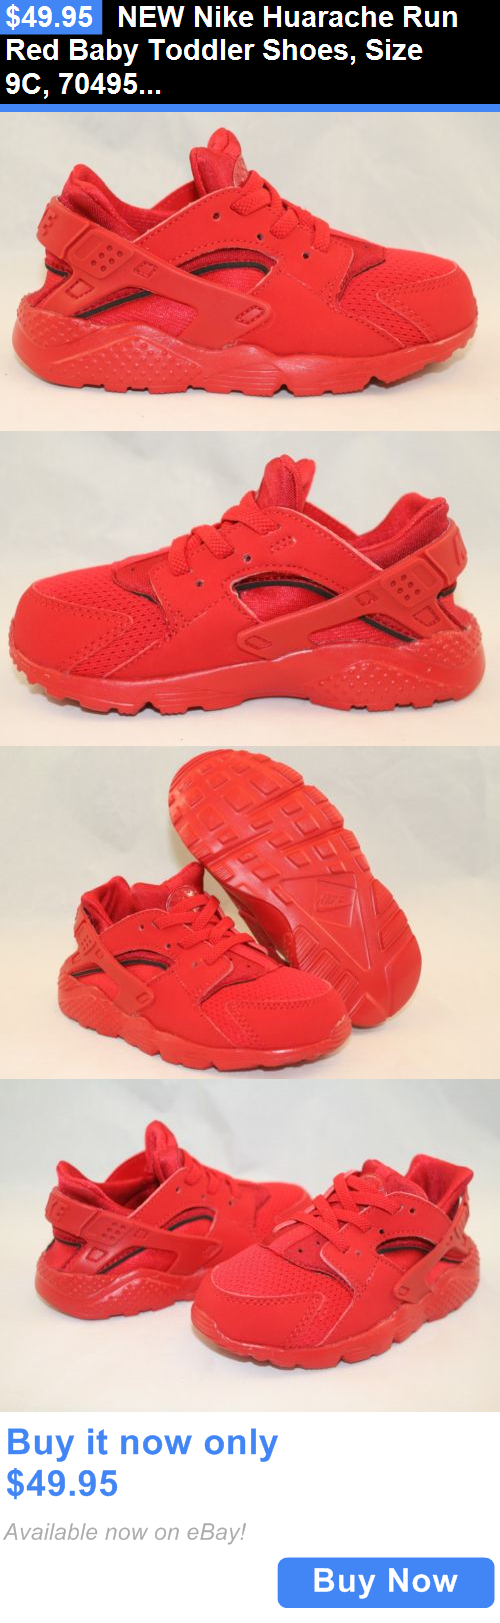 81a449df6e Infant Shoes: New Nike Huarache Run Red Baby Toddler Shoes, Size 9C, 704950- 600 BUY IT NOW ONLY: $49.95